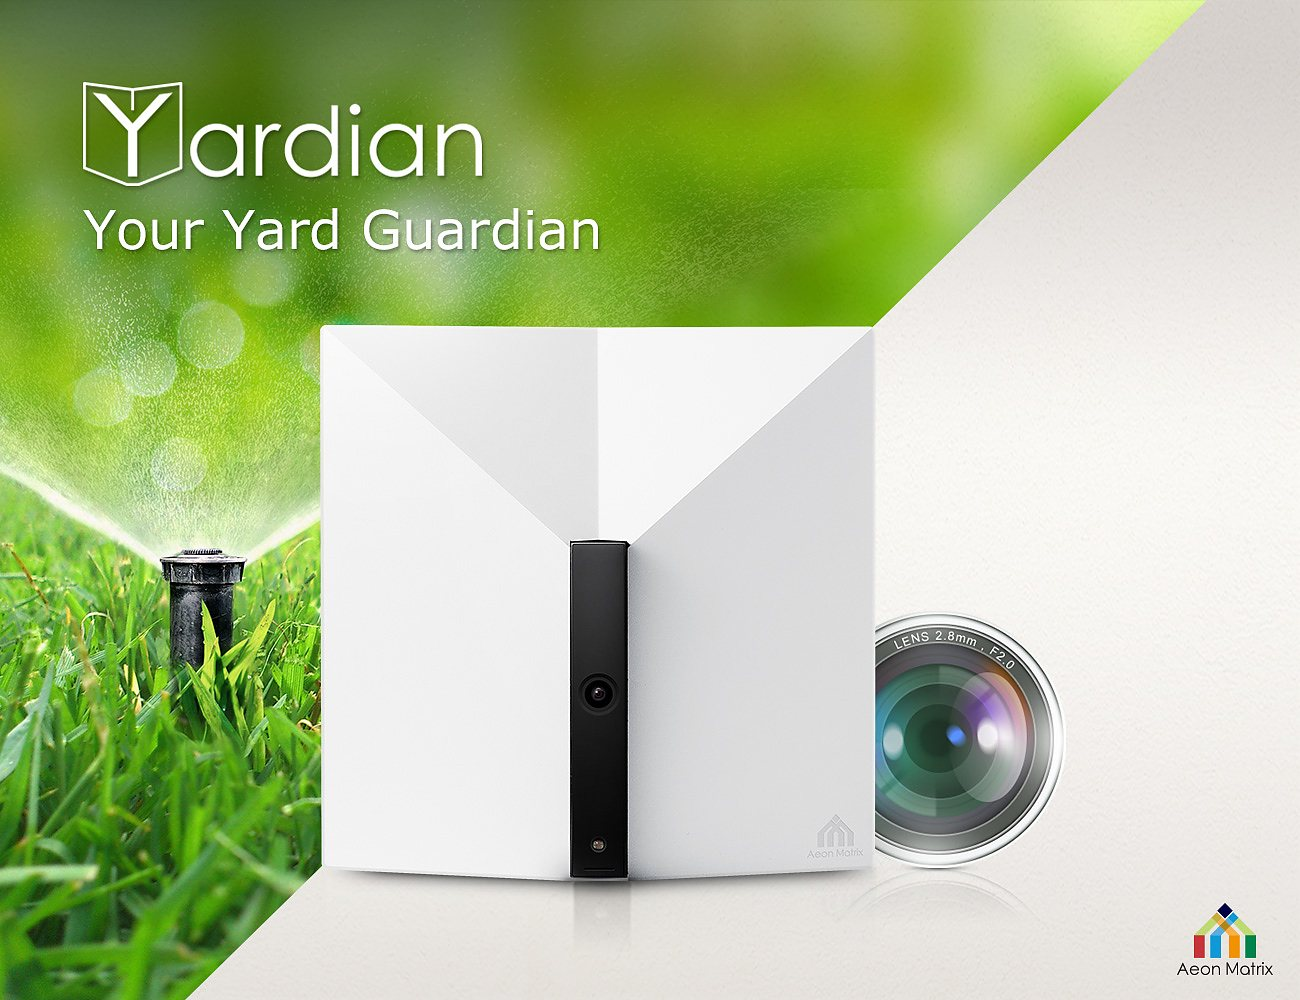 Yardian – Your Yard Guardian